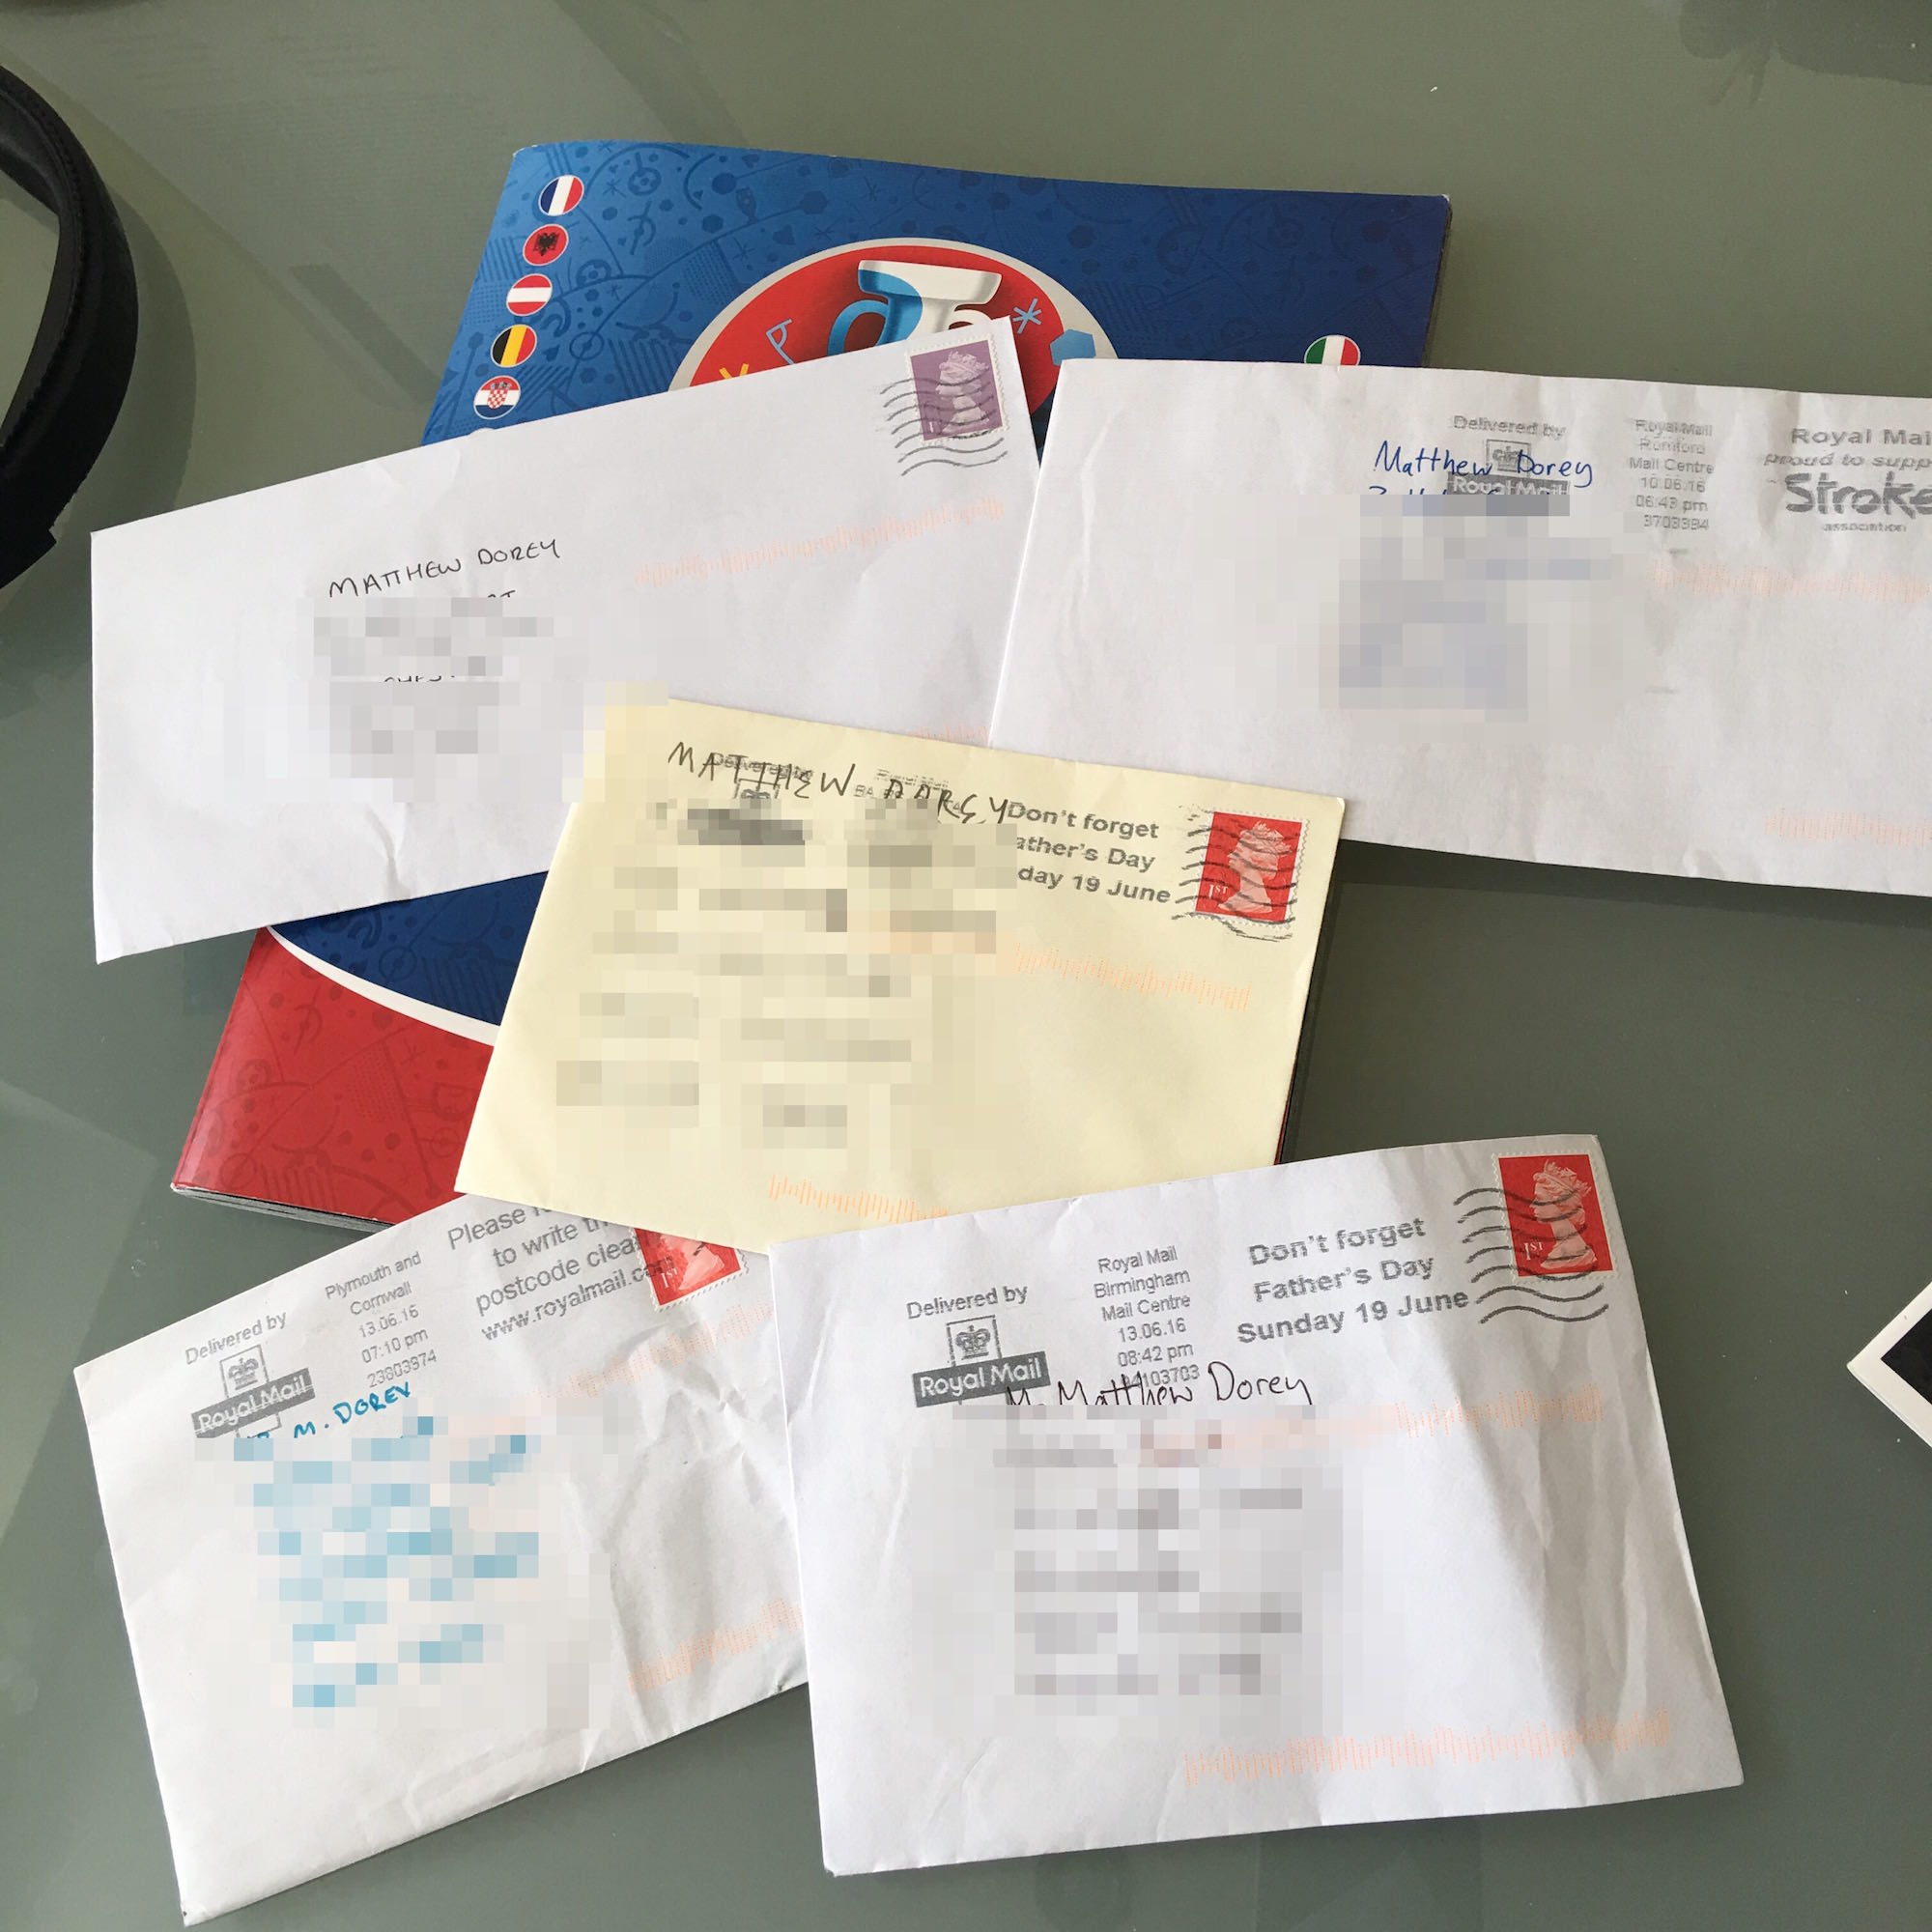 Envelopes containing swaps that have arrived in the post in recent days.